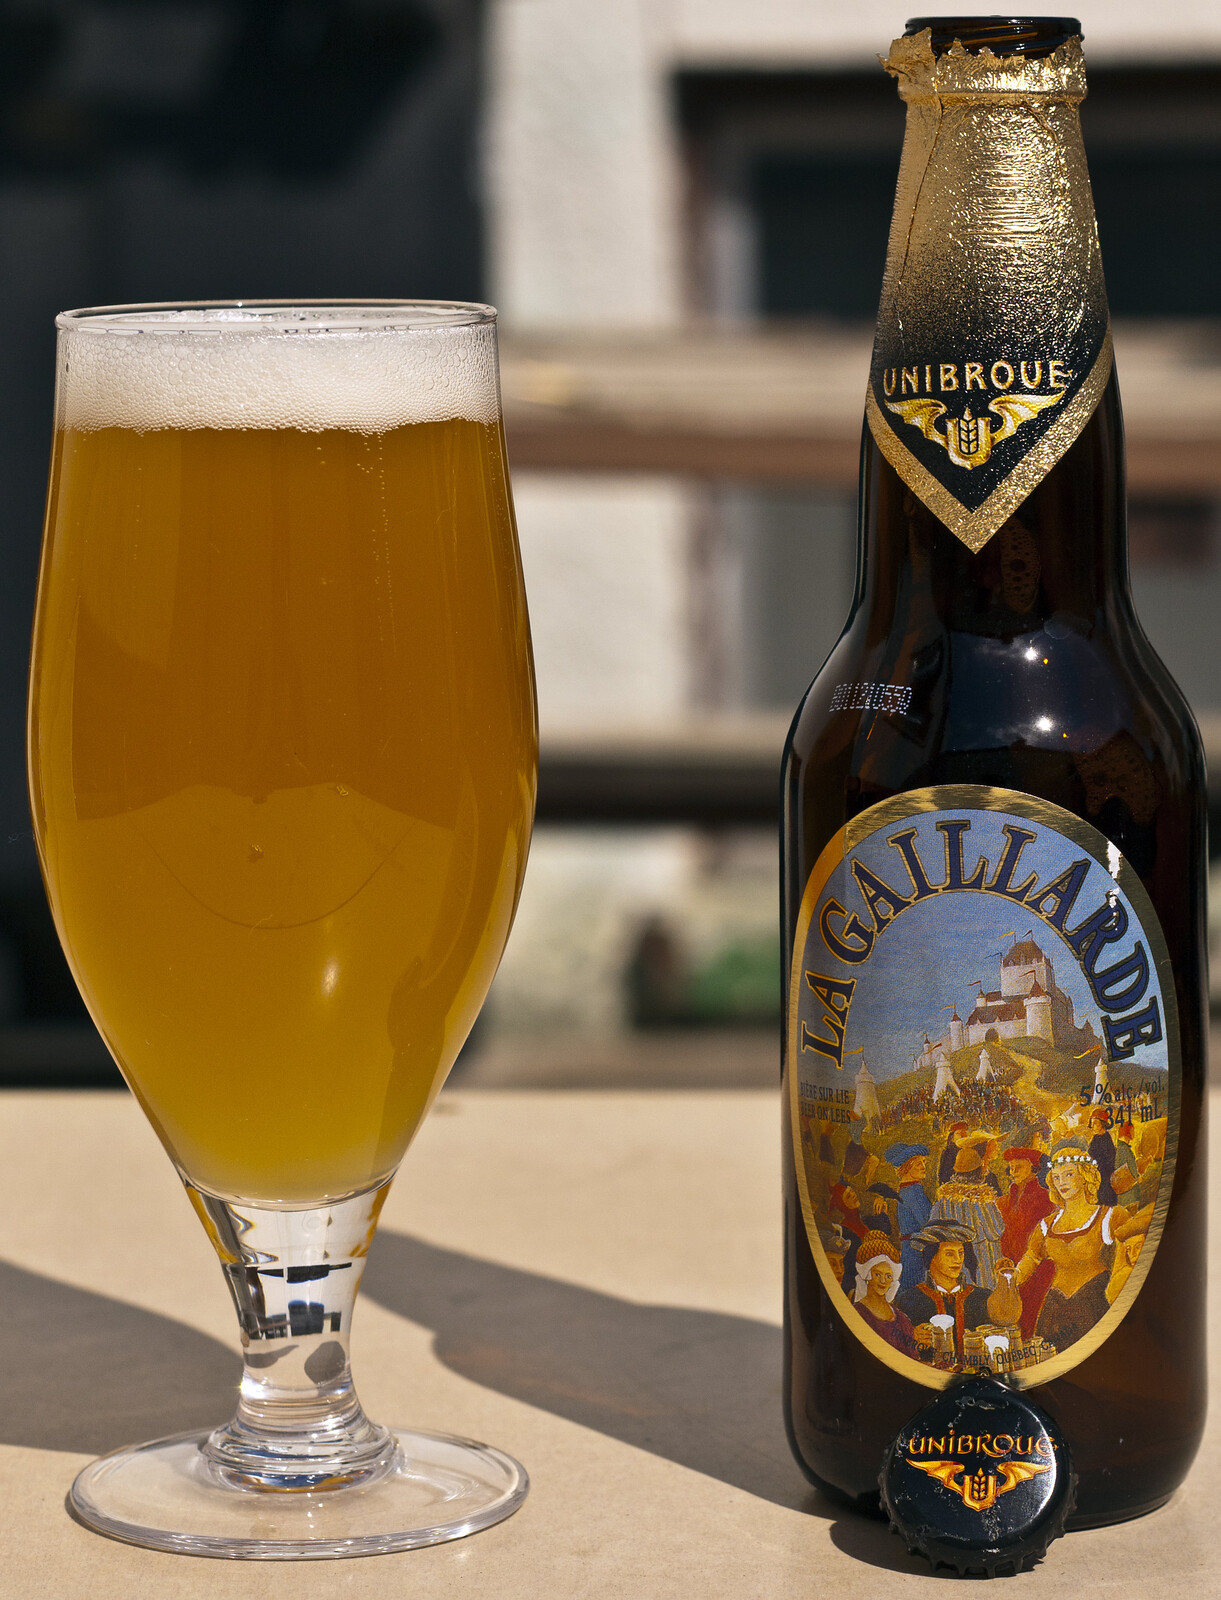 Review: Unibroue La Gaillarde (Belgian Pale Ale) by Cody La Bière